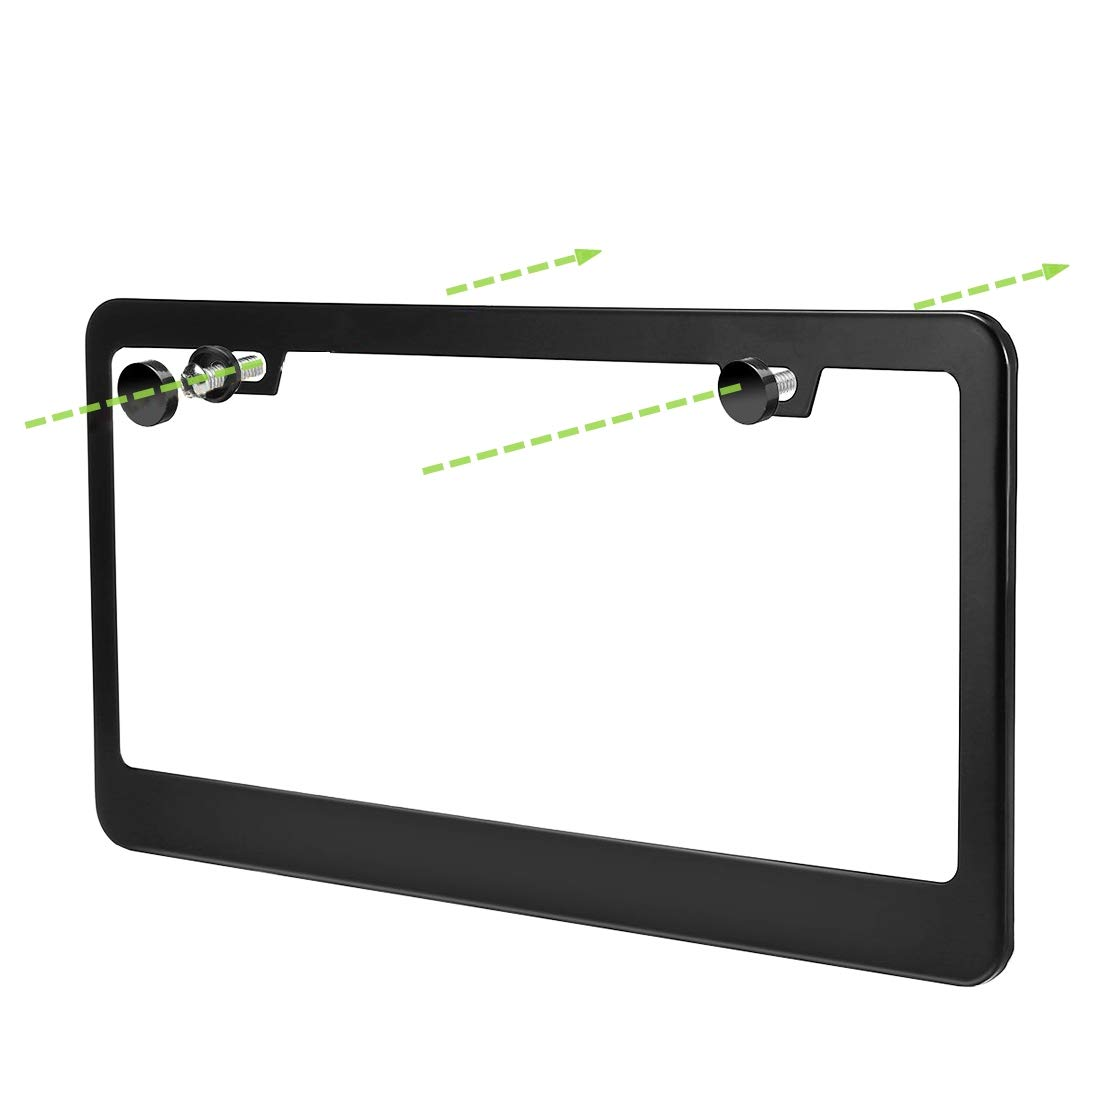 uncle squirrel 2 Pieces Black License Plate Frame with Chrome Screw Caps,Holes Stainless Steel Car Licence Plate Covers for US Vehicles